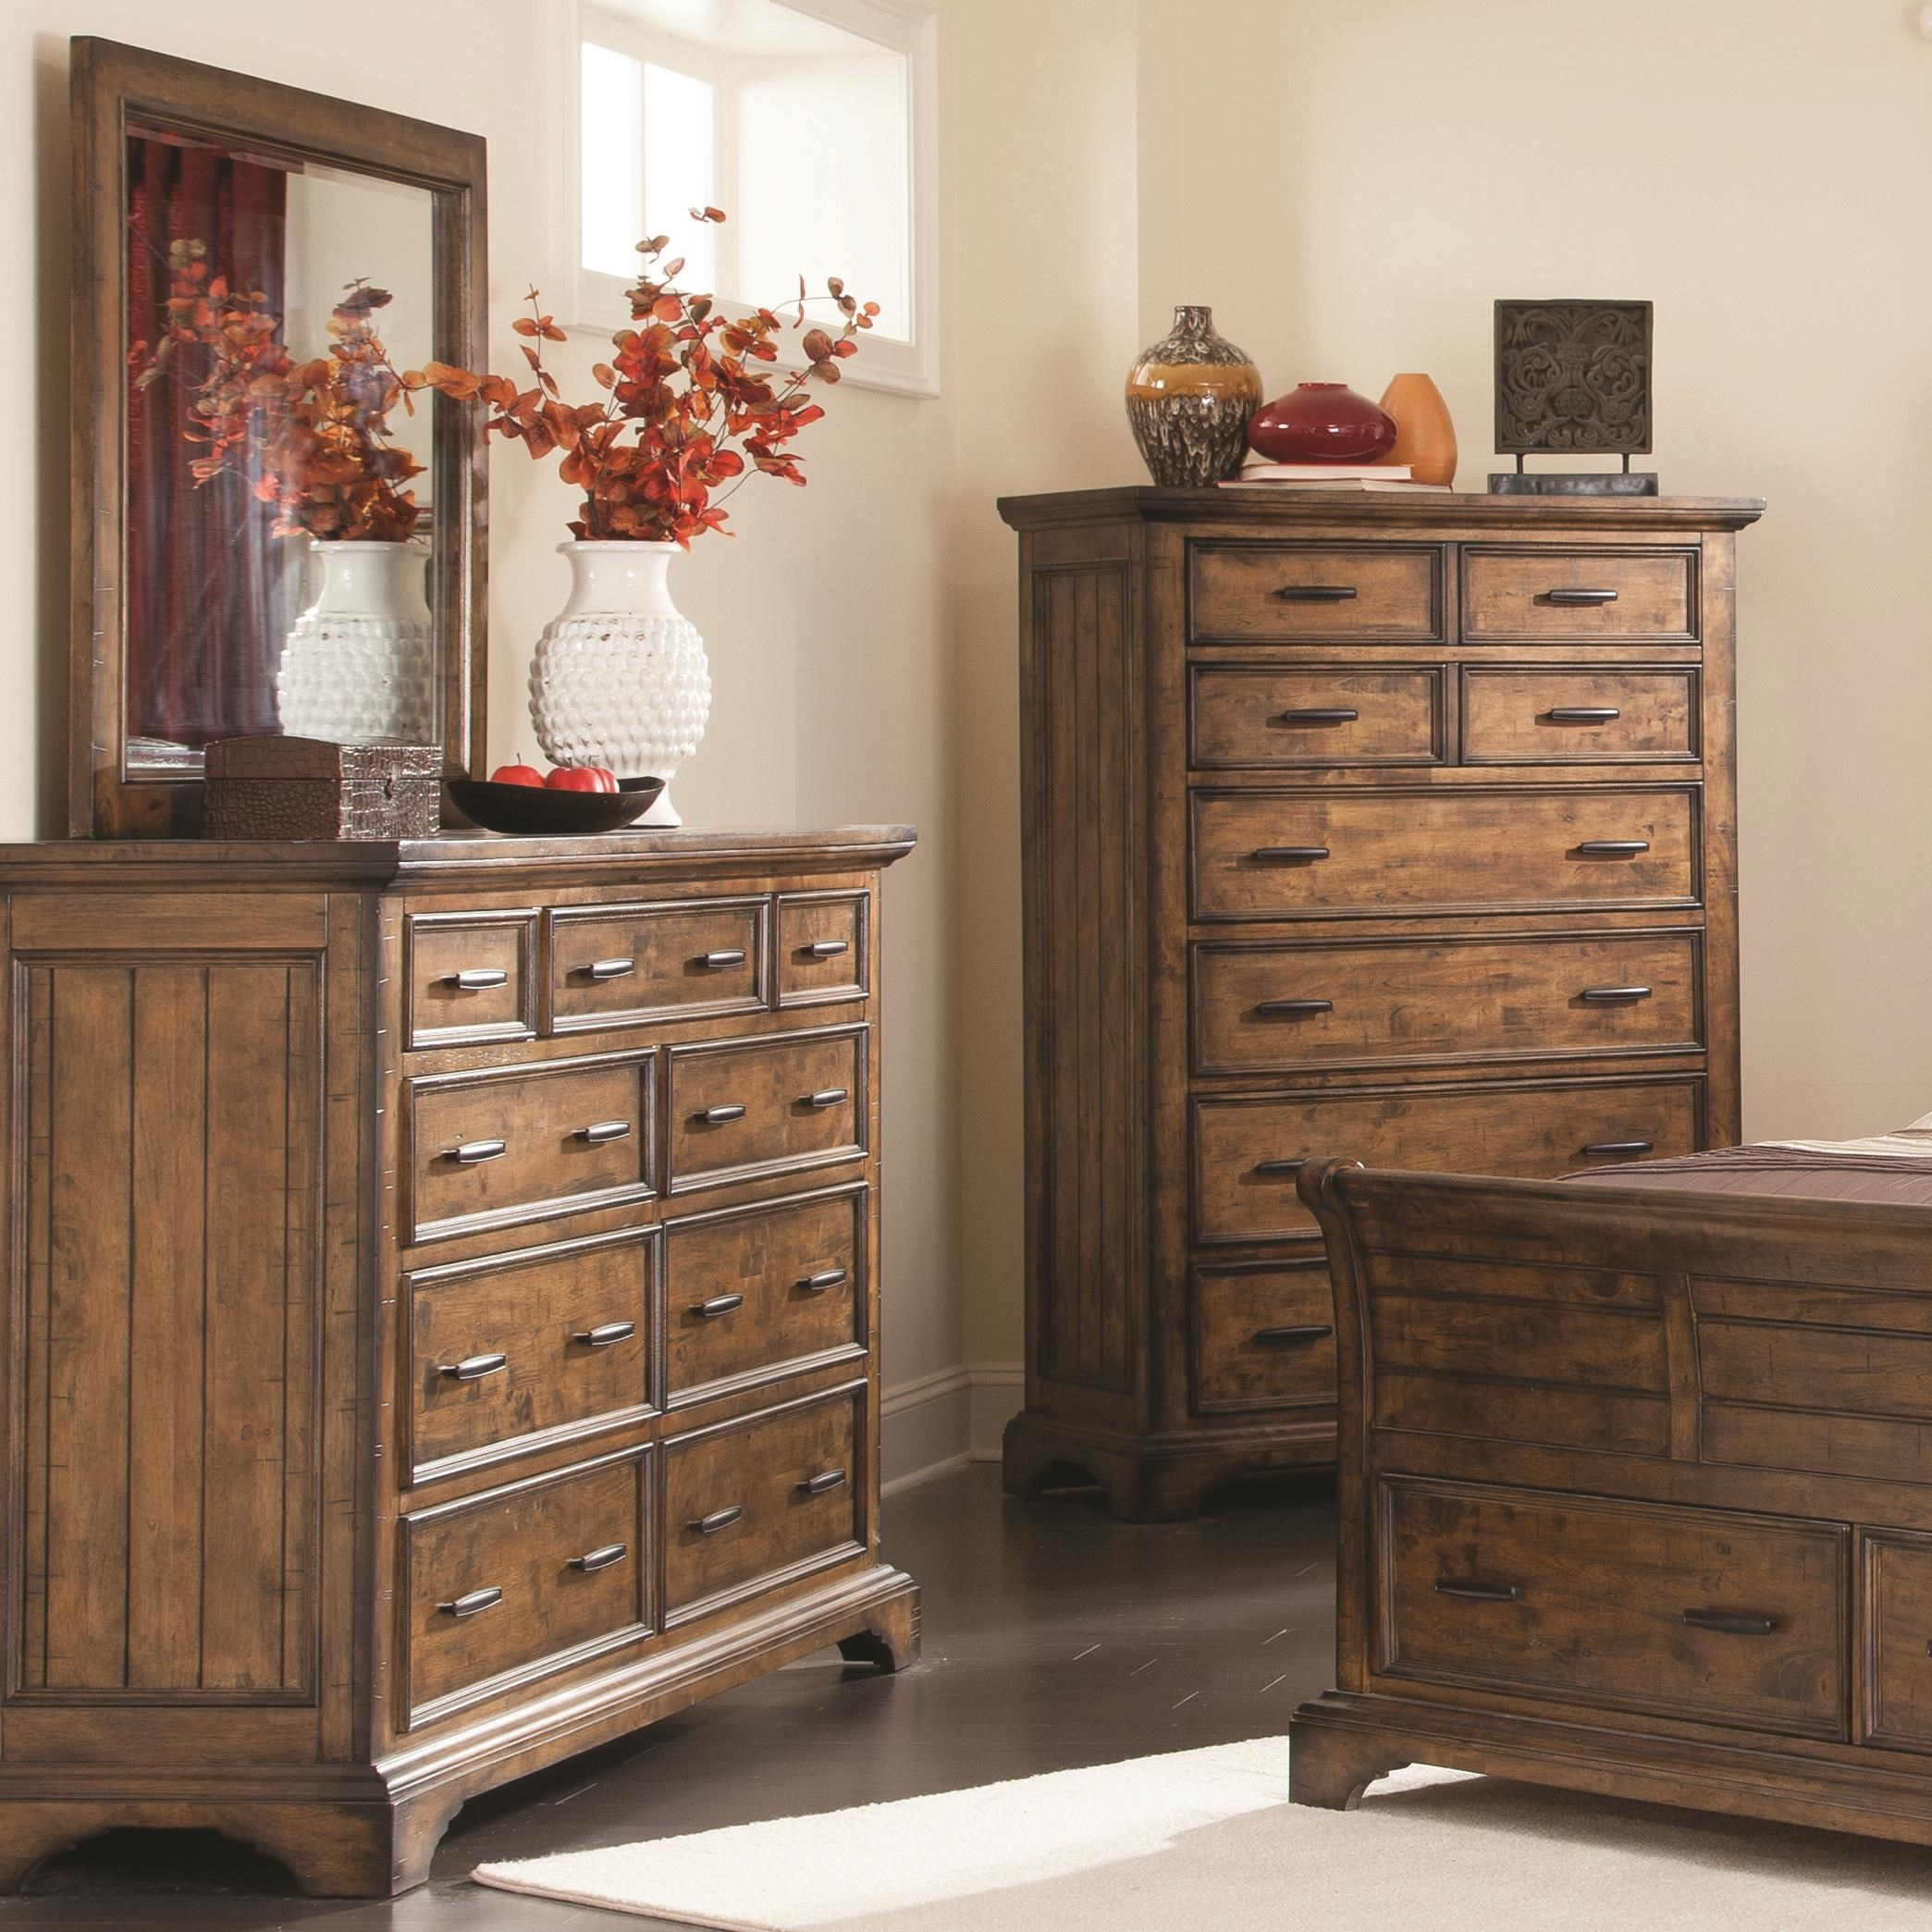 Charmant Coaster Elk GroveDresser And Mirror Set ...